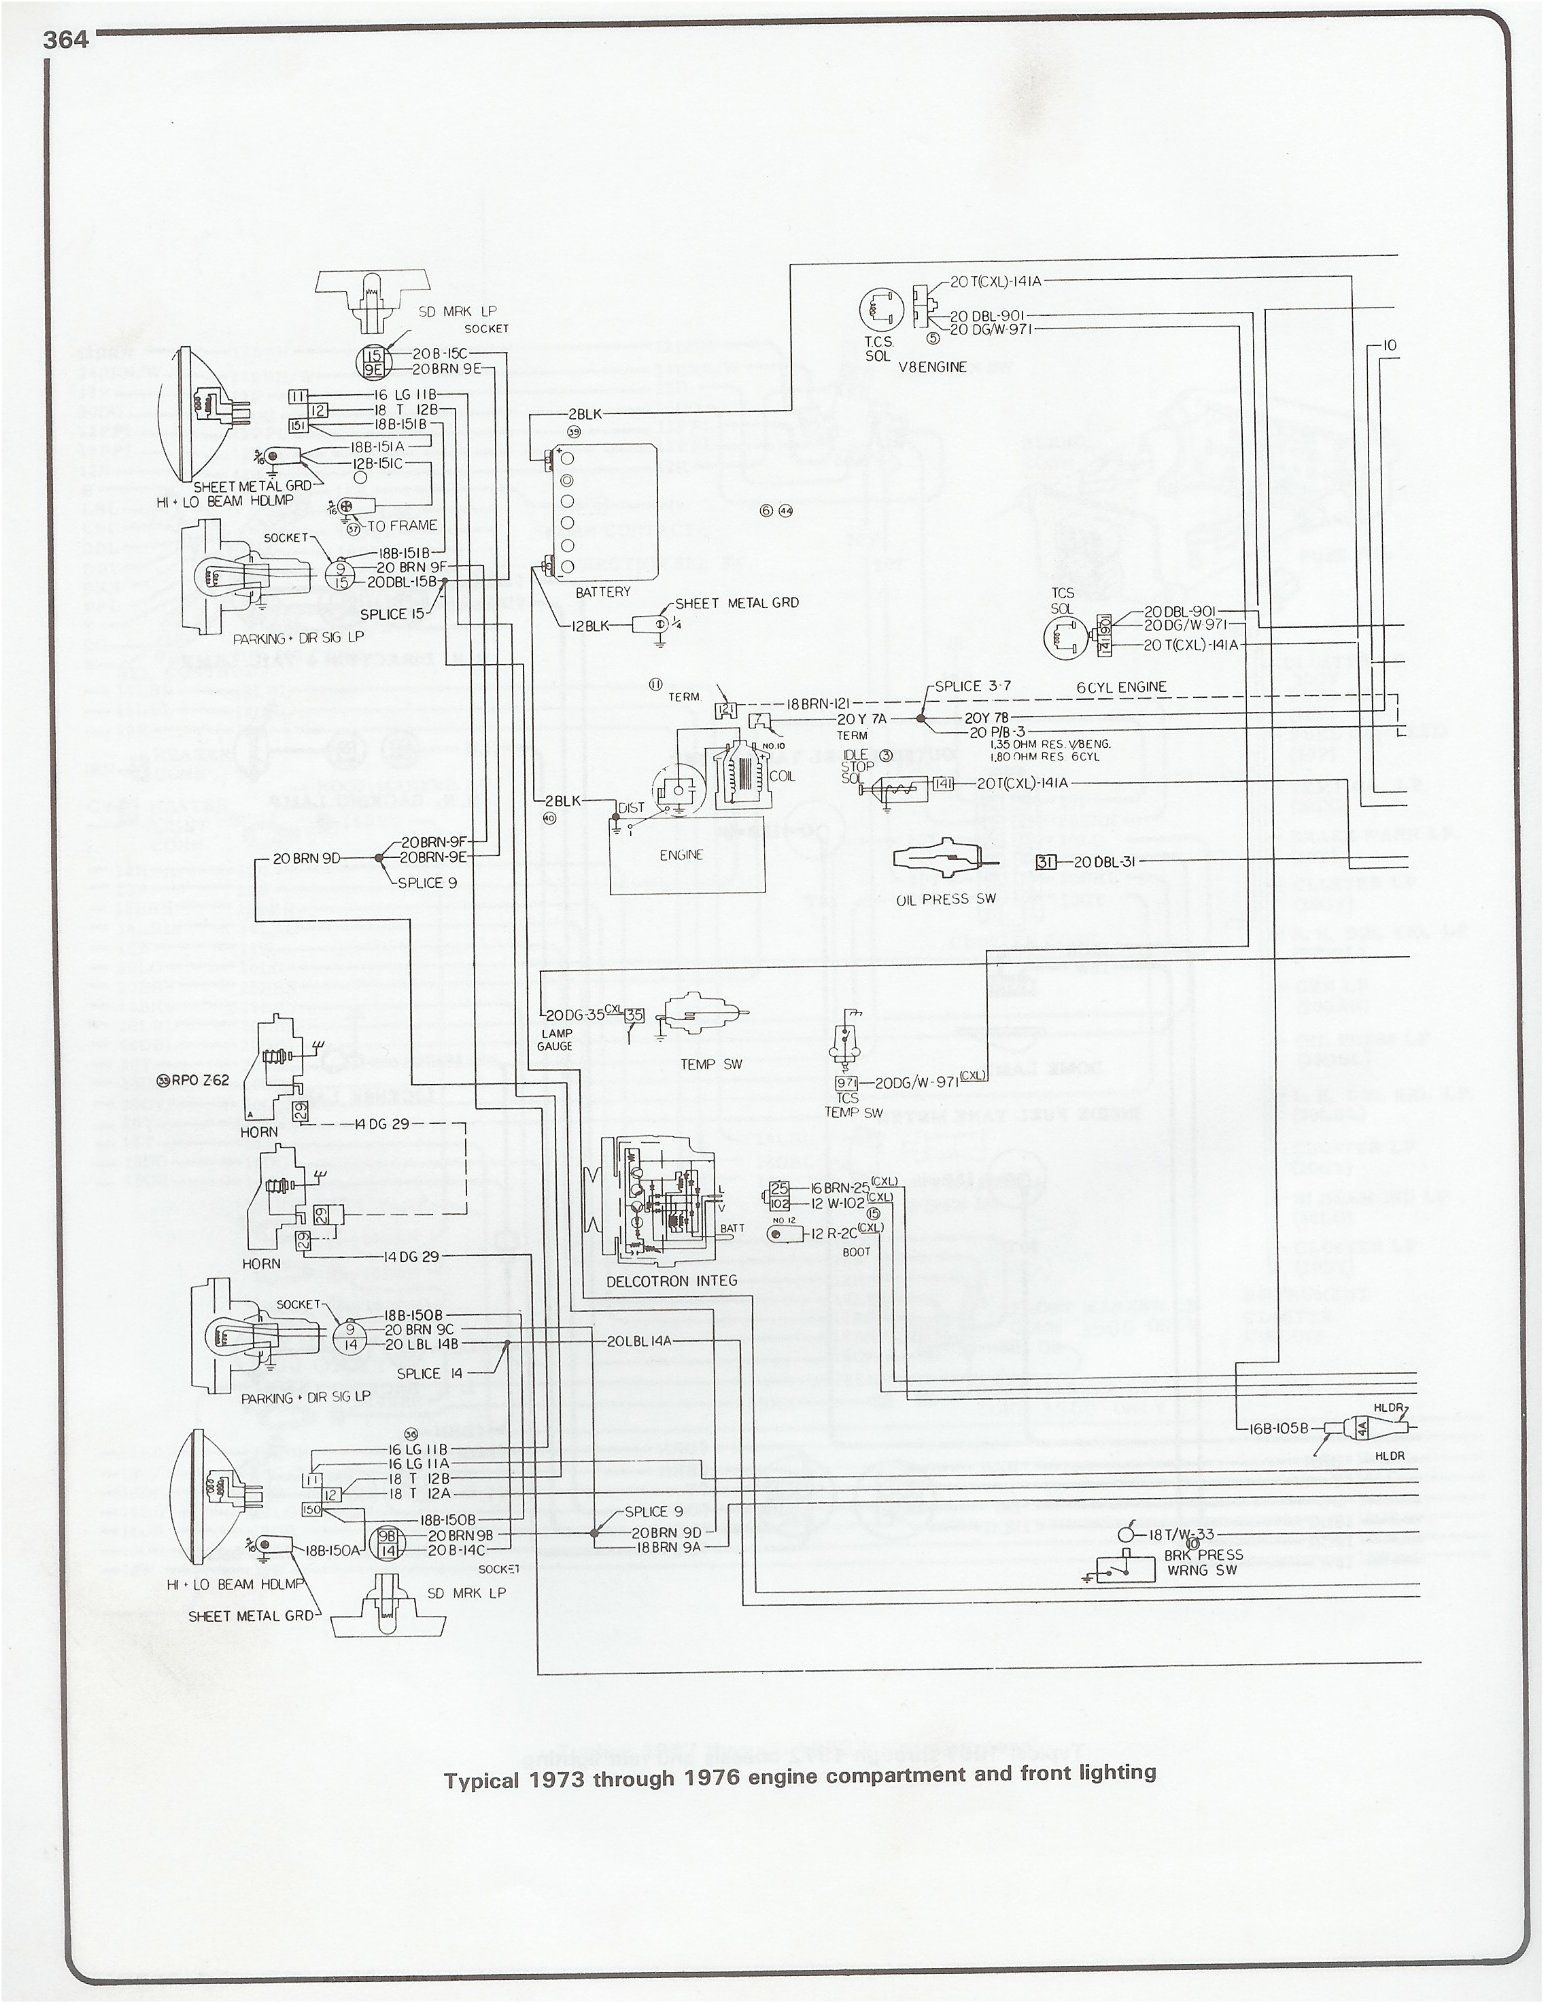 medium resolution of wiring diagram 1973 1976 chevy pickup chevy wiring diagram 1976 chevy truck